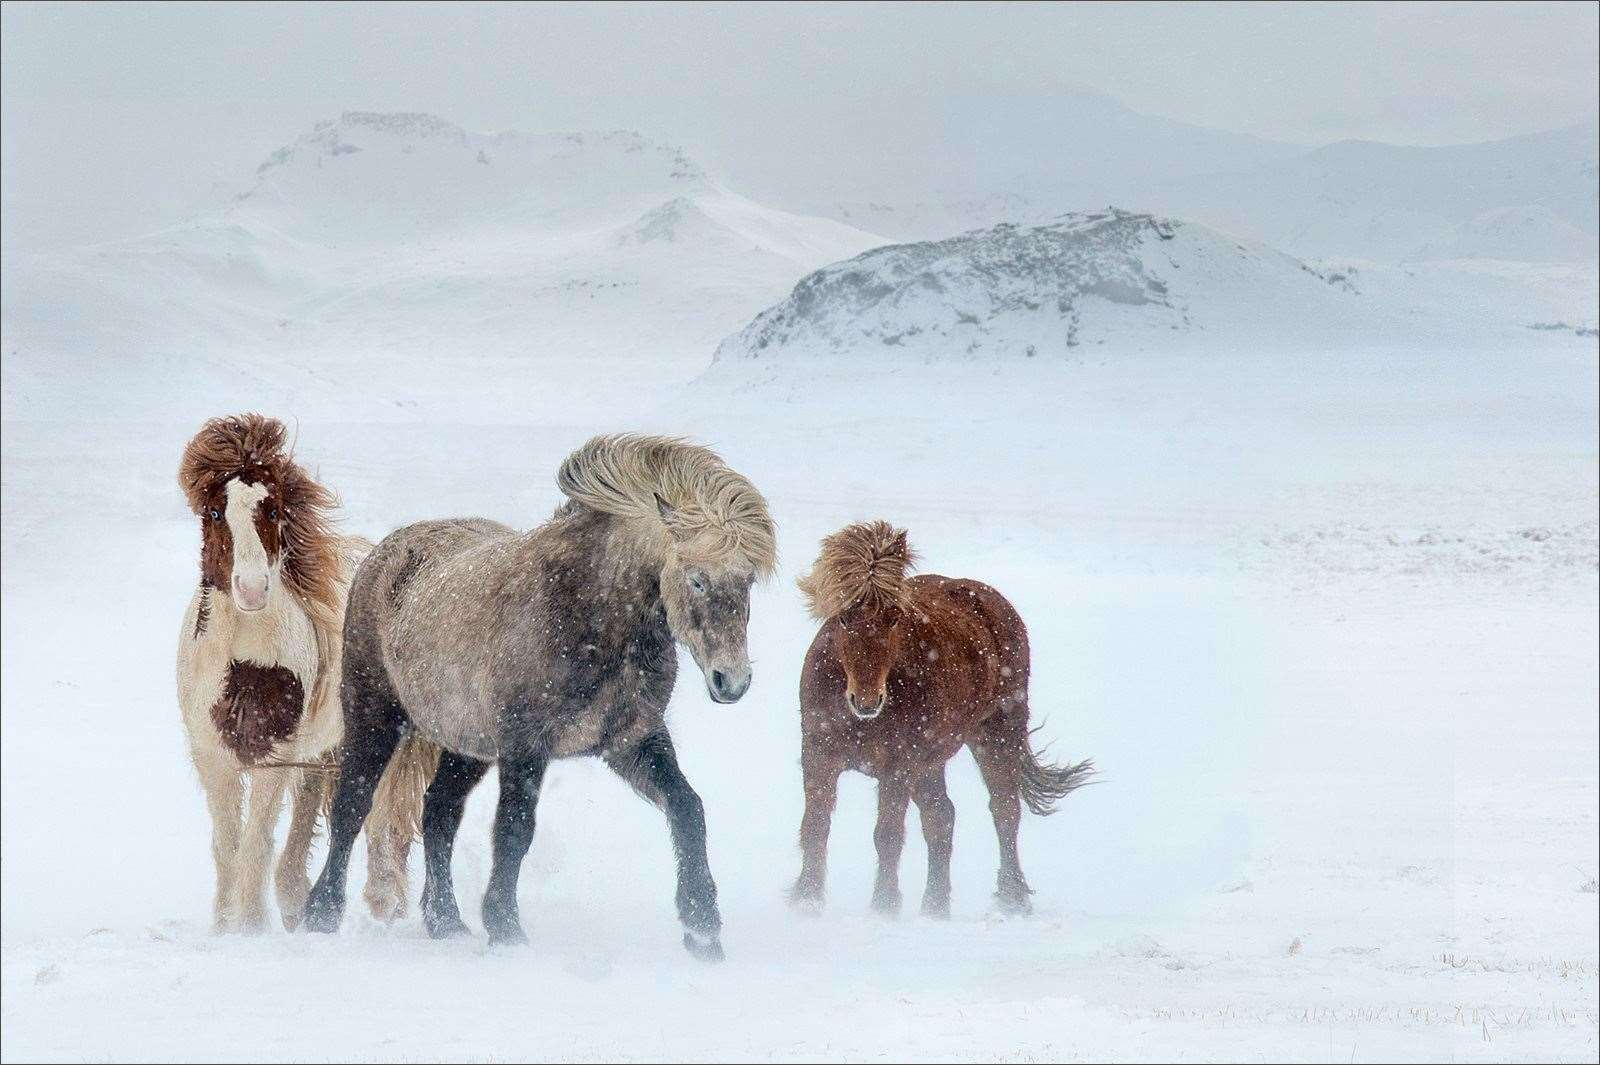 Icelandic Ponies by Sarah Kelman, Cambridge Camera Club (27657746)